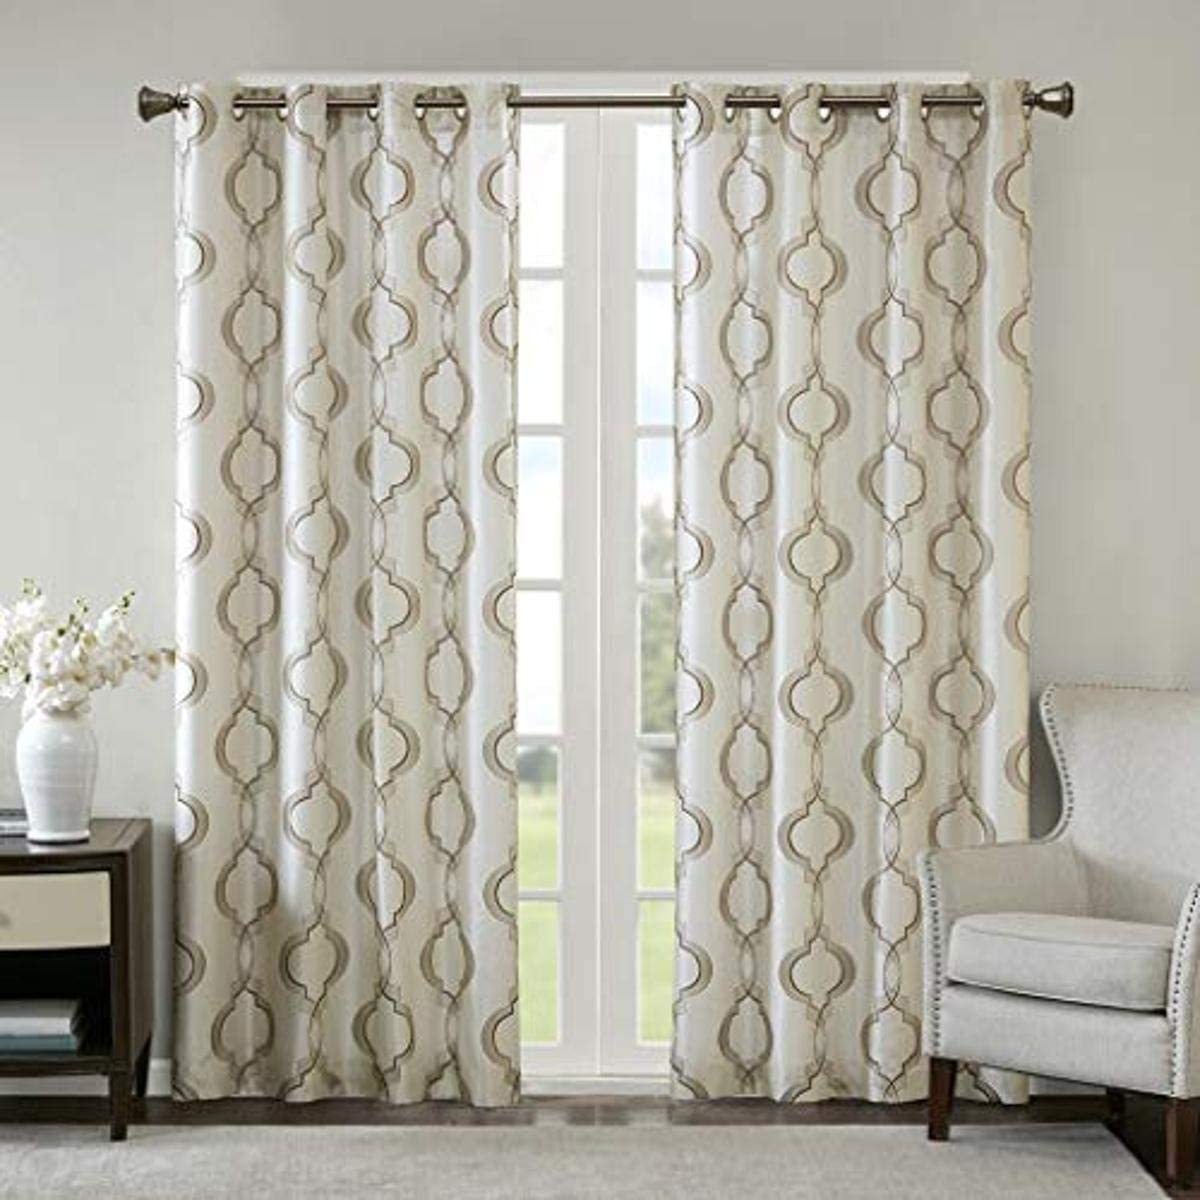 Madison Park Tan Grommet Curtains for Living Room, Harlan Embroidered Window Curtains for Bedroom, Faux Silk Semi-Opaque Transitional Living Room Curtains, 50X63, 1-Panel Pack